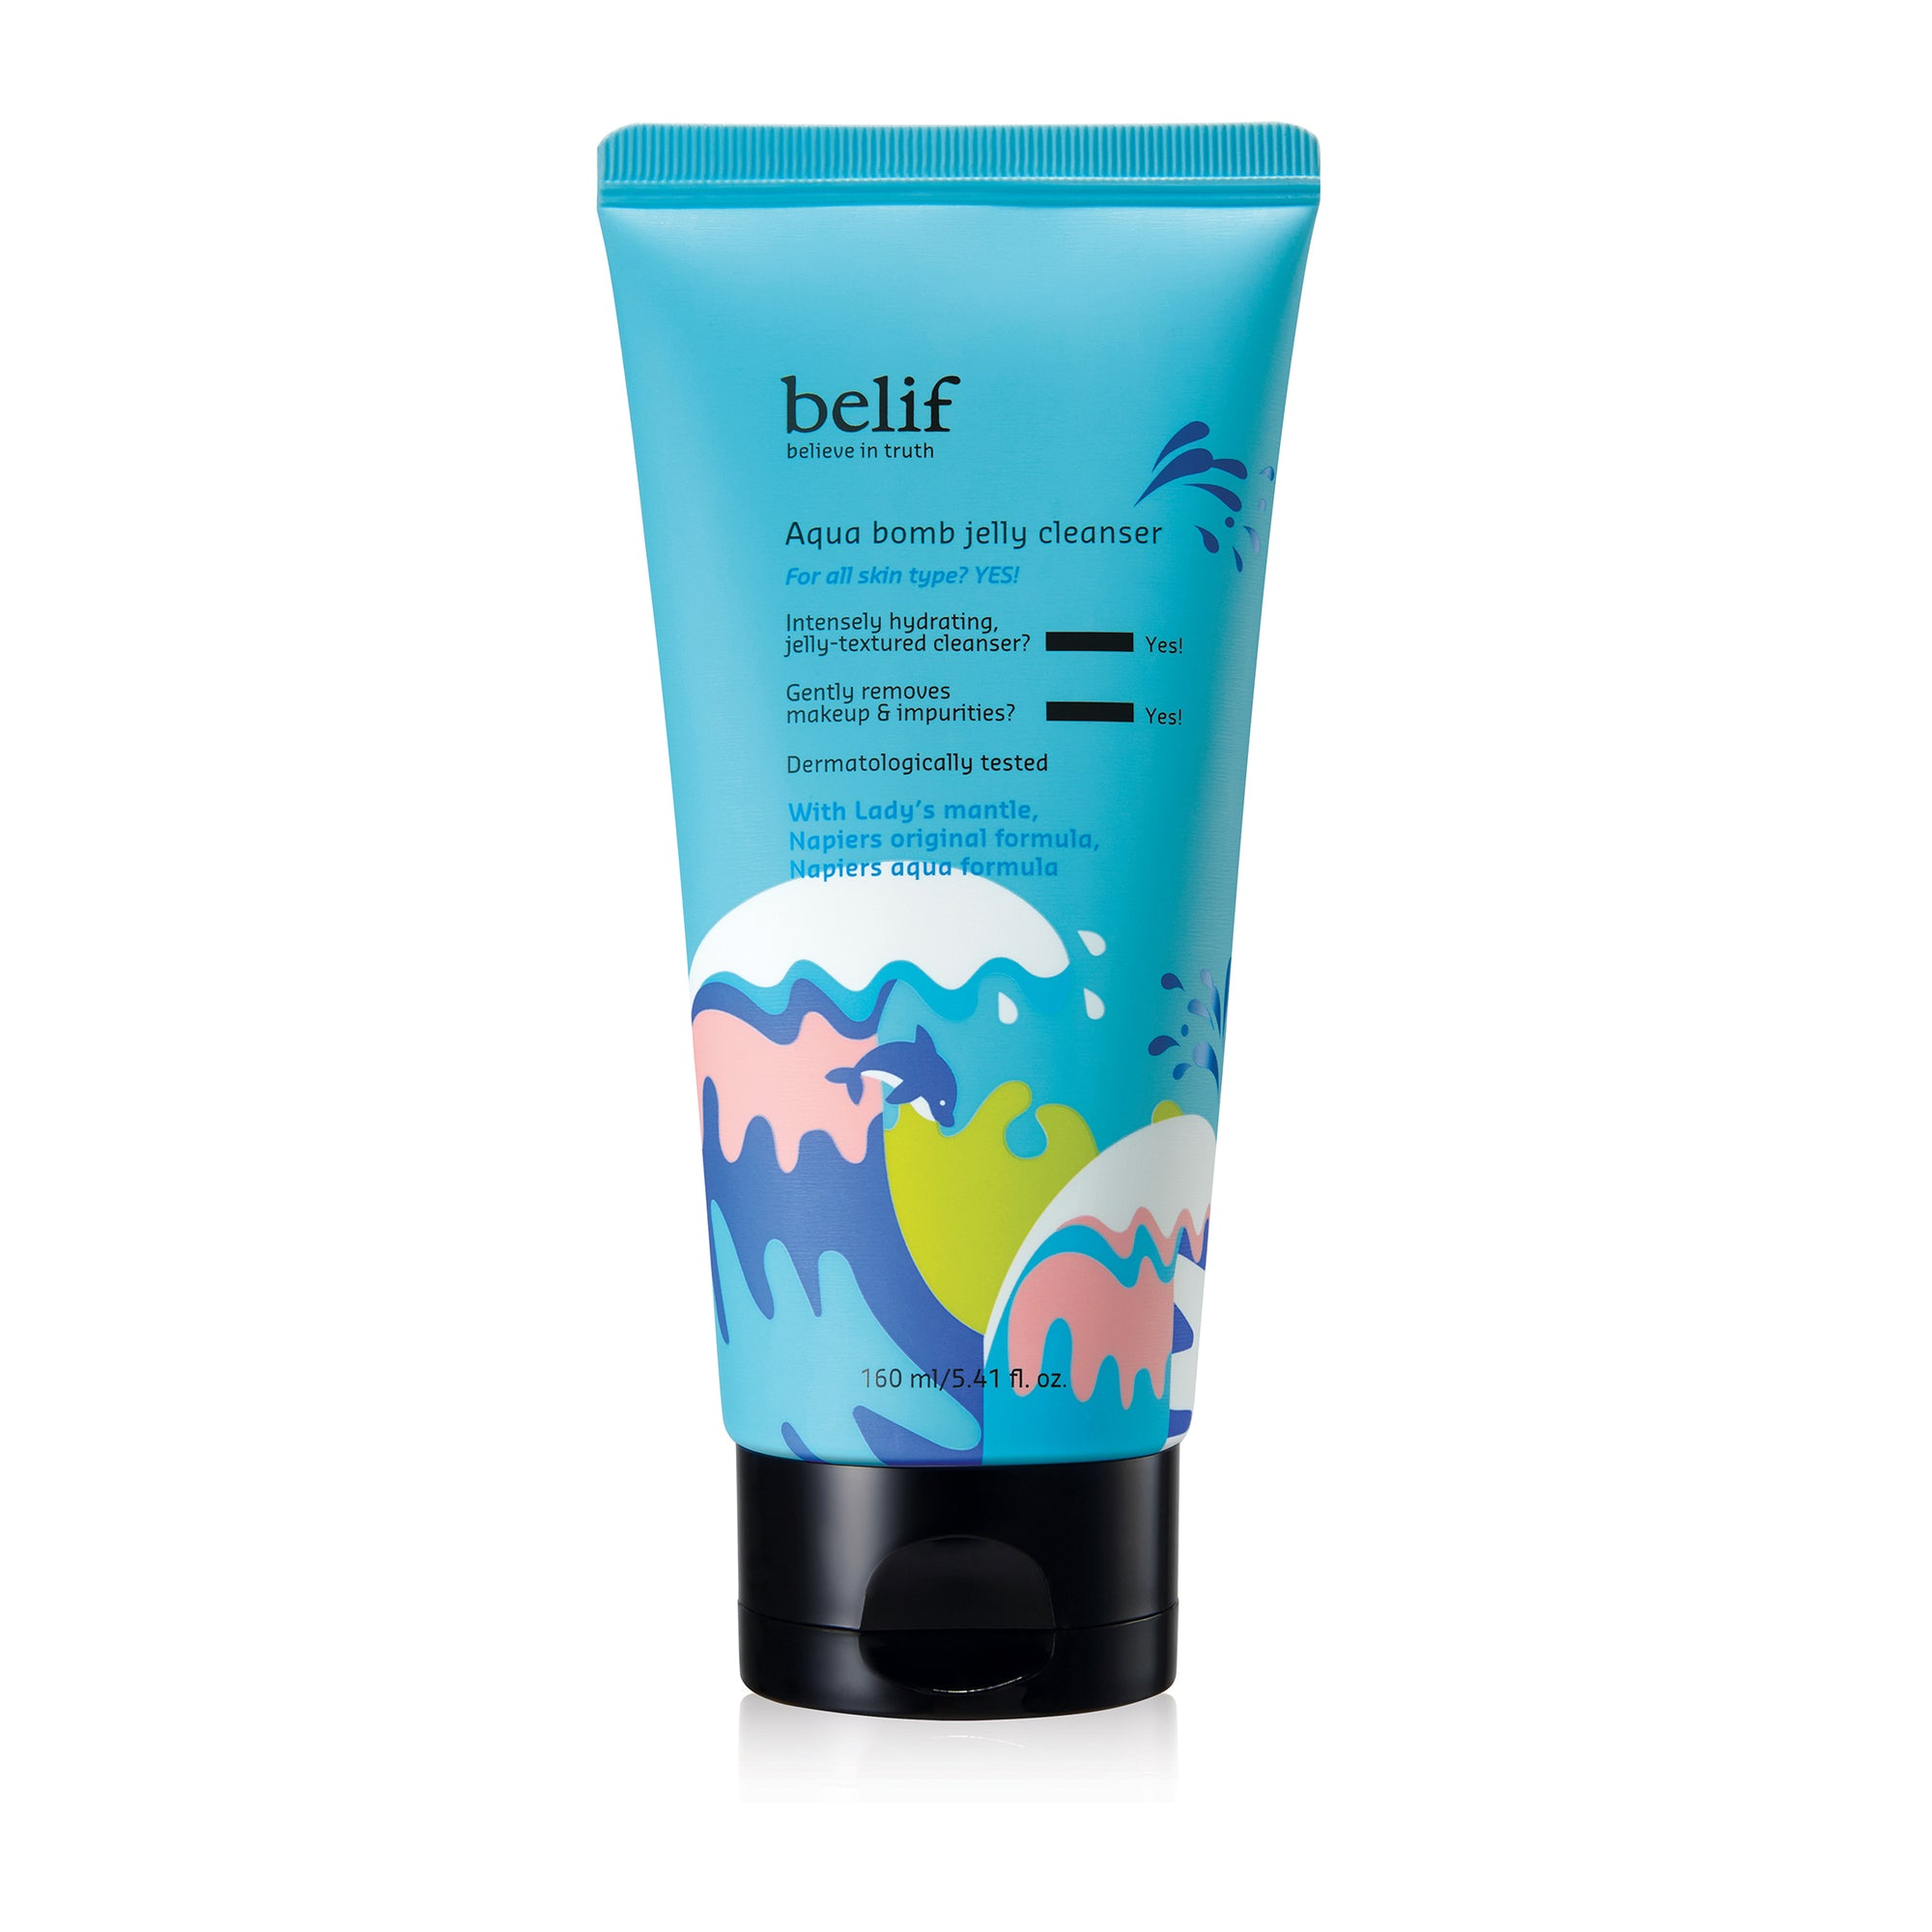 Aqua Bomb Jelly Cleanser by belif #3